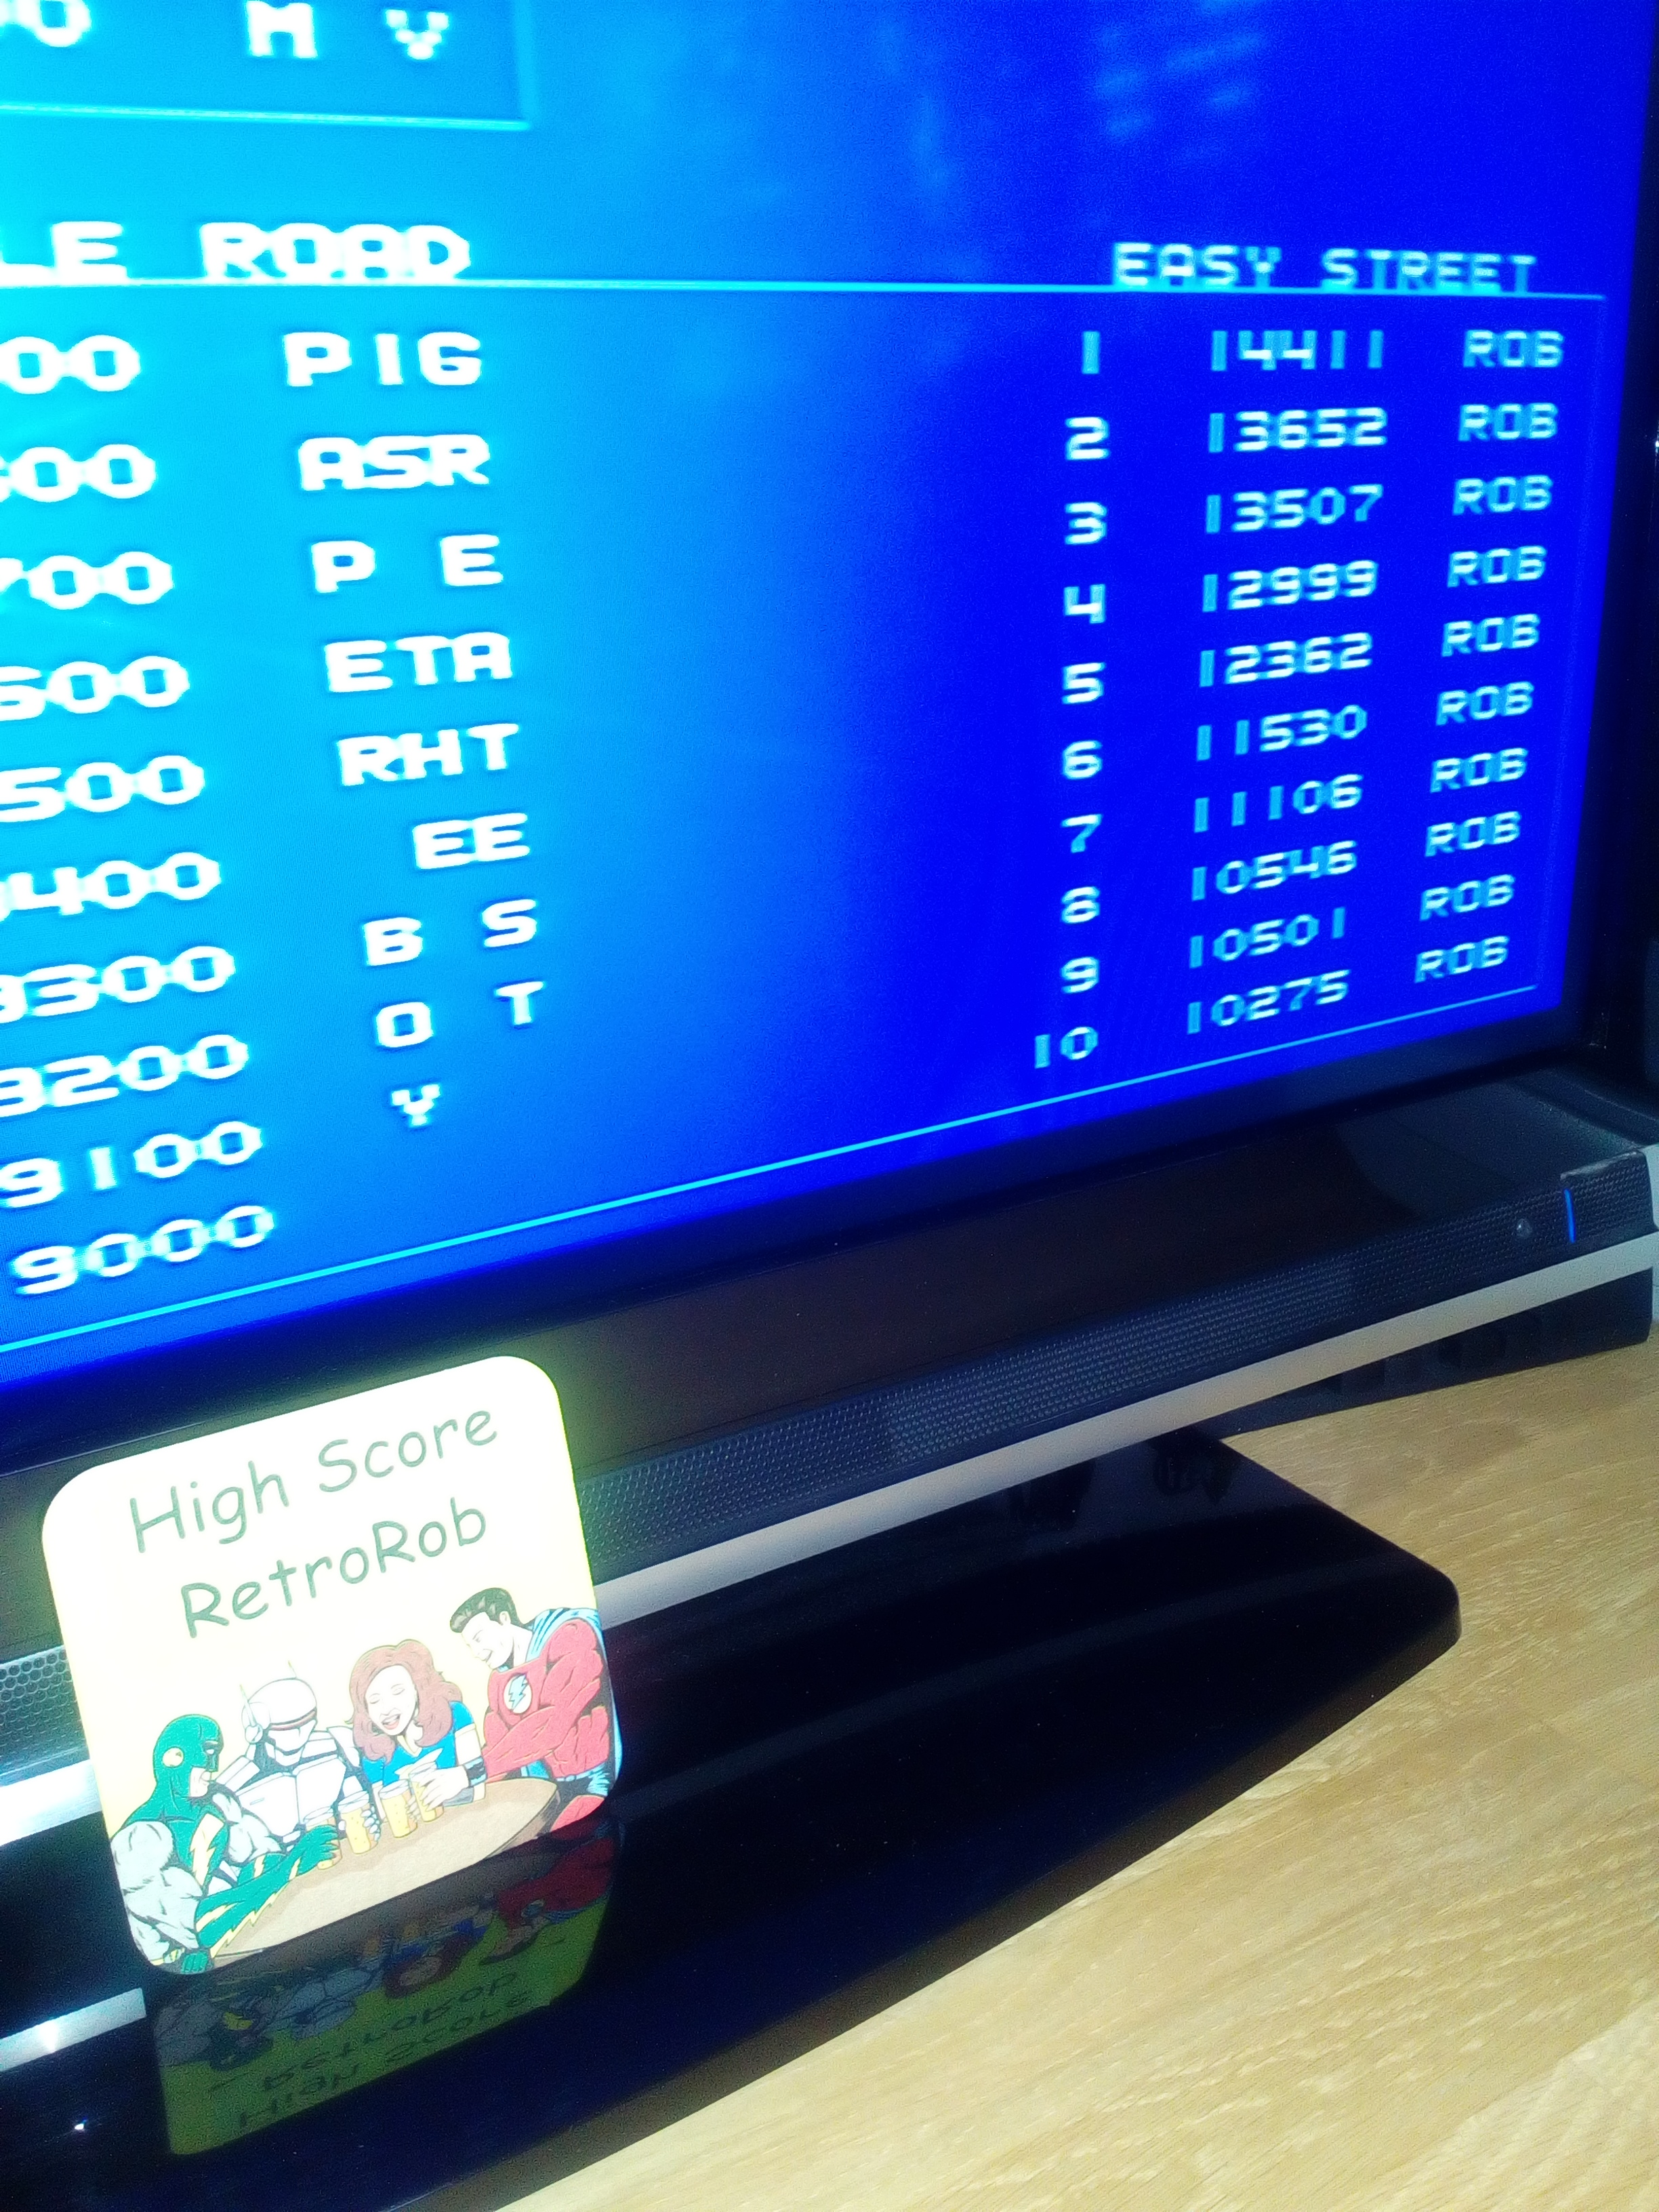 RetroRob: Midway Arcade Treasures: Paperboy (Playstation 2) 14,411 points on 2018-05-04 06:49:17